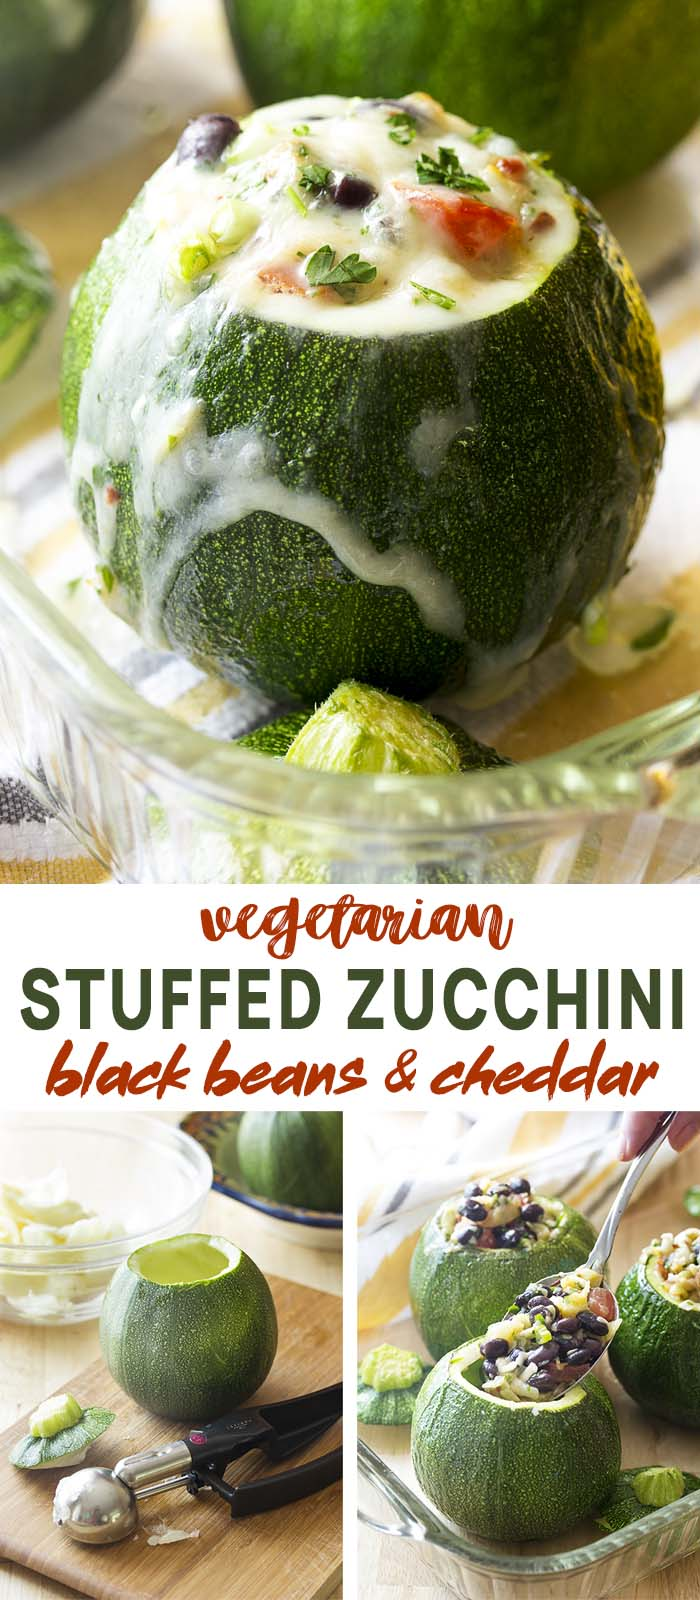 Stuffed squash how to collage with text overlay - Stuffed Zucchini.